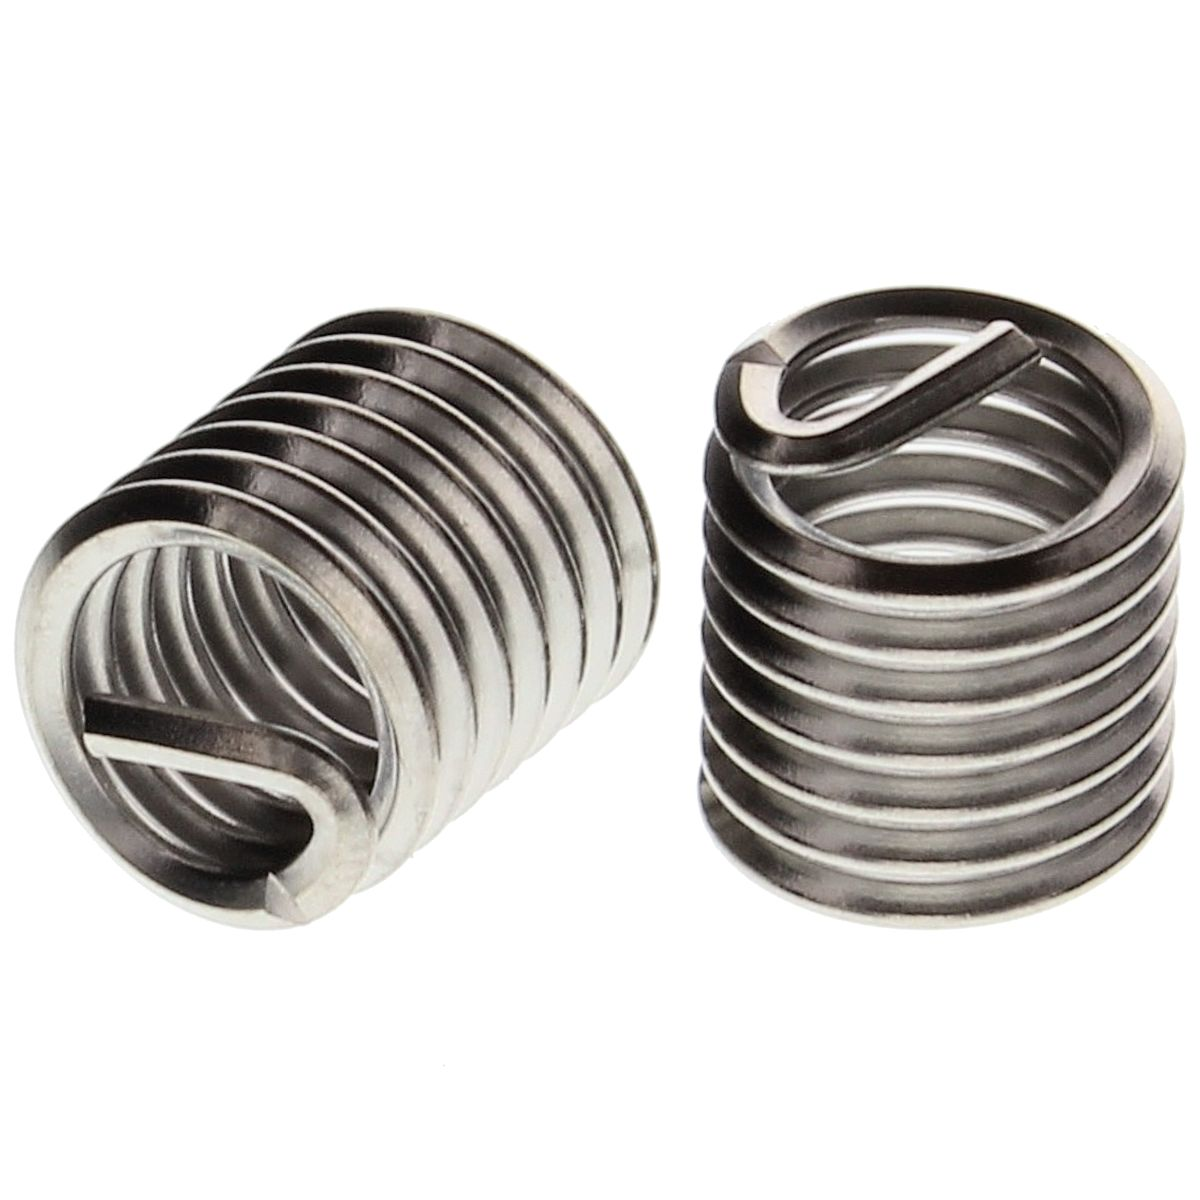 #10-24 x .285 Packaged Threaded Inserts - Coarse  10/PKG